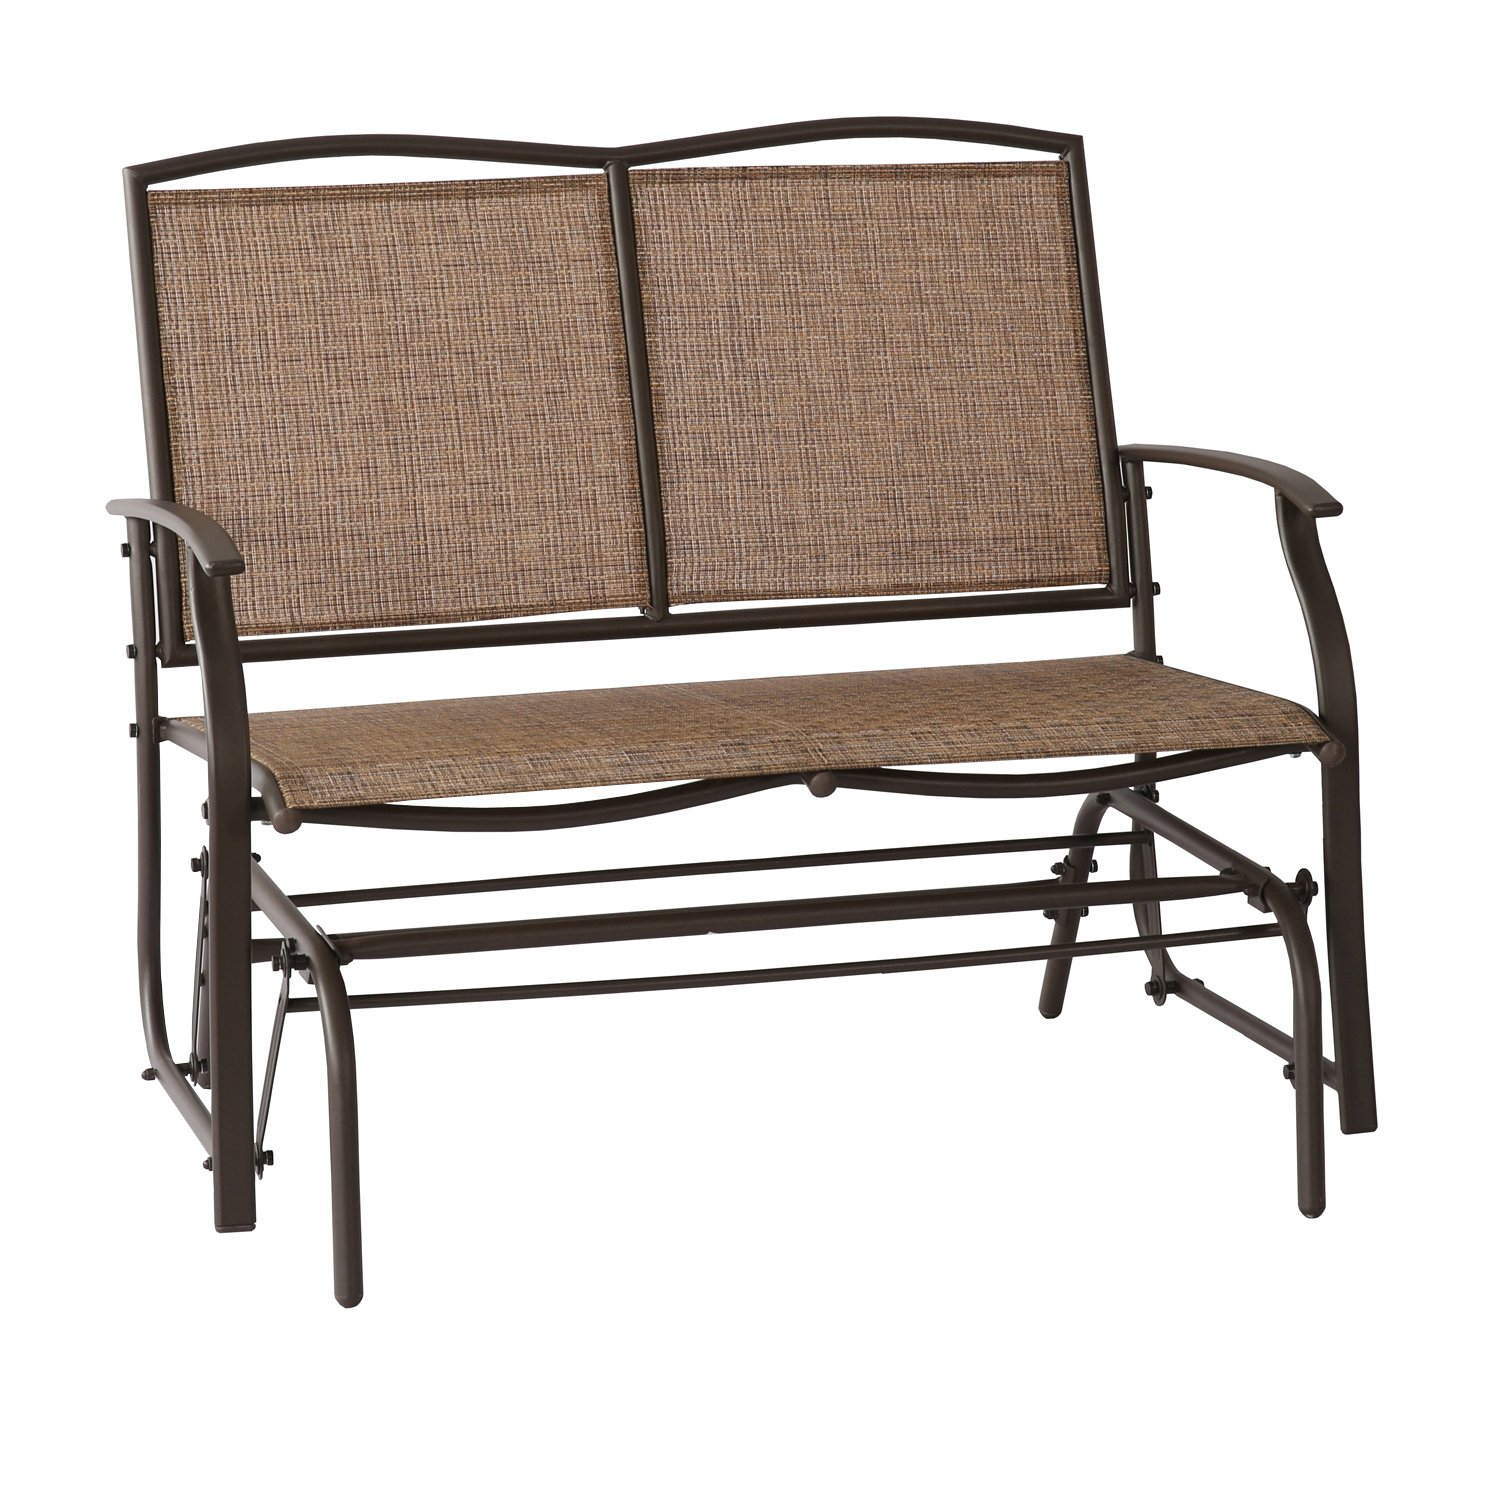 Cheap Patio Furniture Glider Bench, Find Patio Furniture Pertaining To Rocking Love Seats Glider Swing Benches With Sturdy Frame (View 14 of 25)